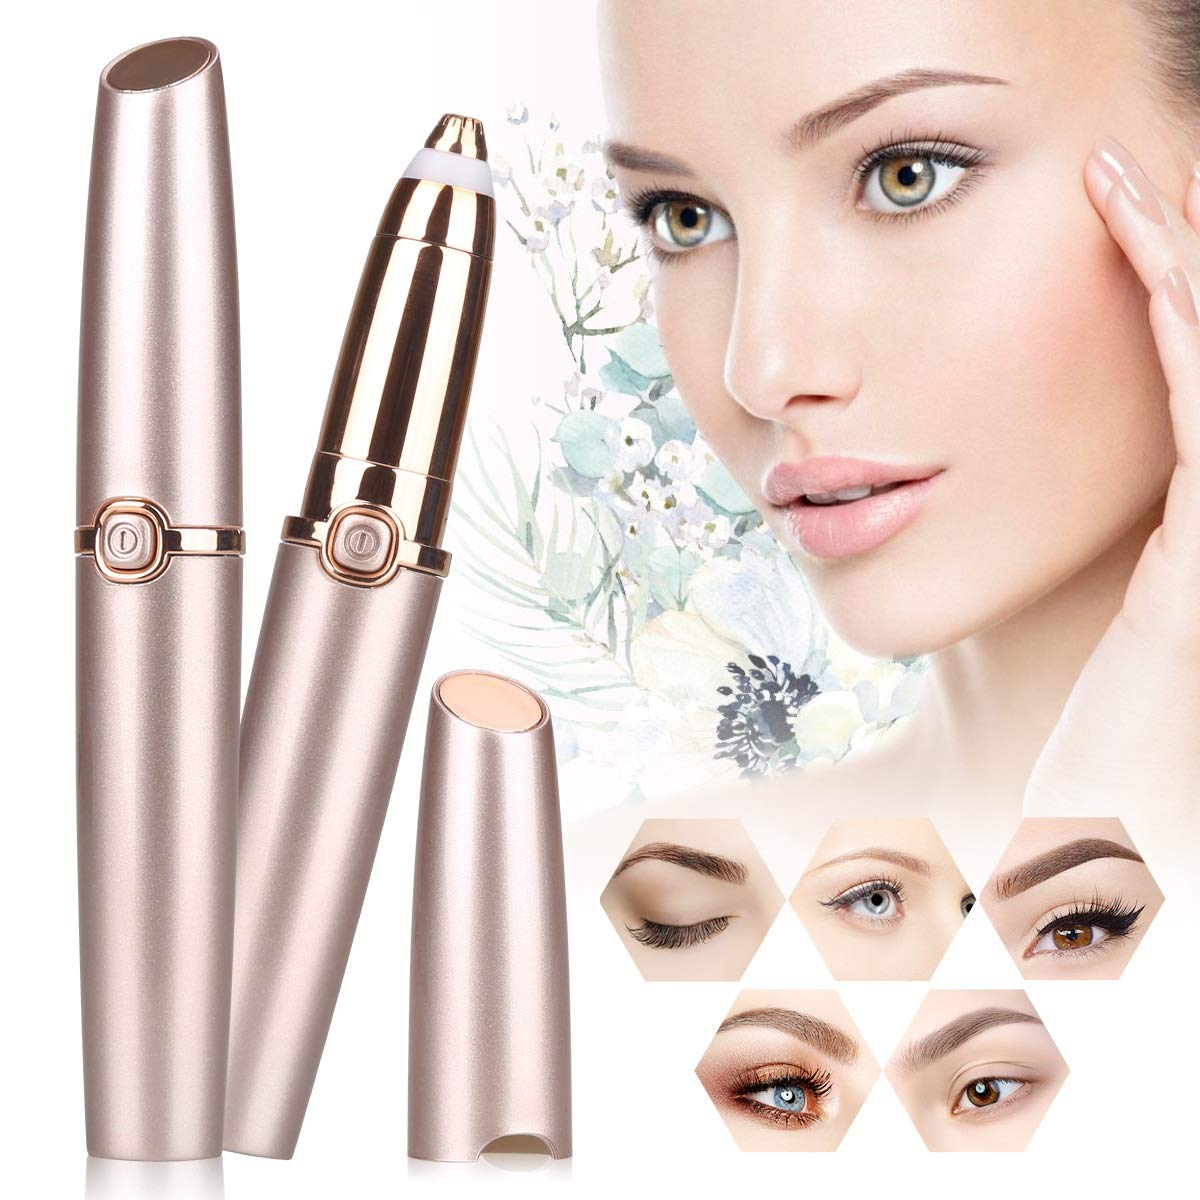 LordFord Eyebrow Hair Remover Hassle-free Portable Eyebrow Hair Removal Razor with Light Battery Included Rose Gold